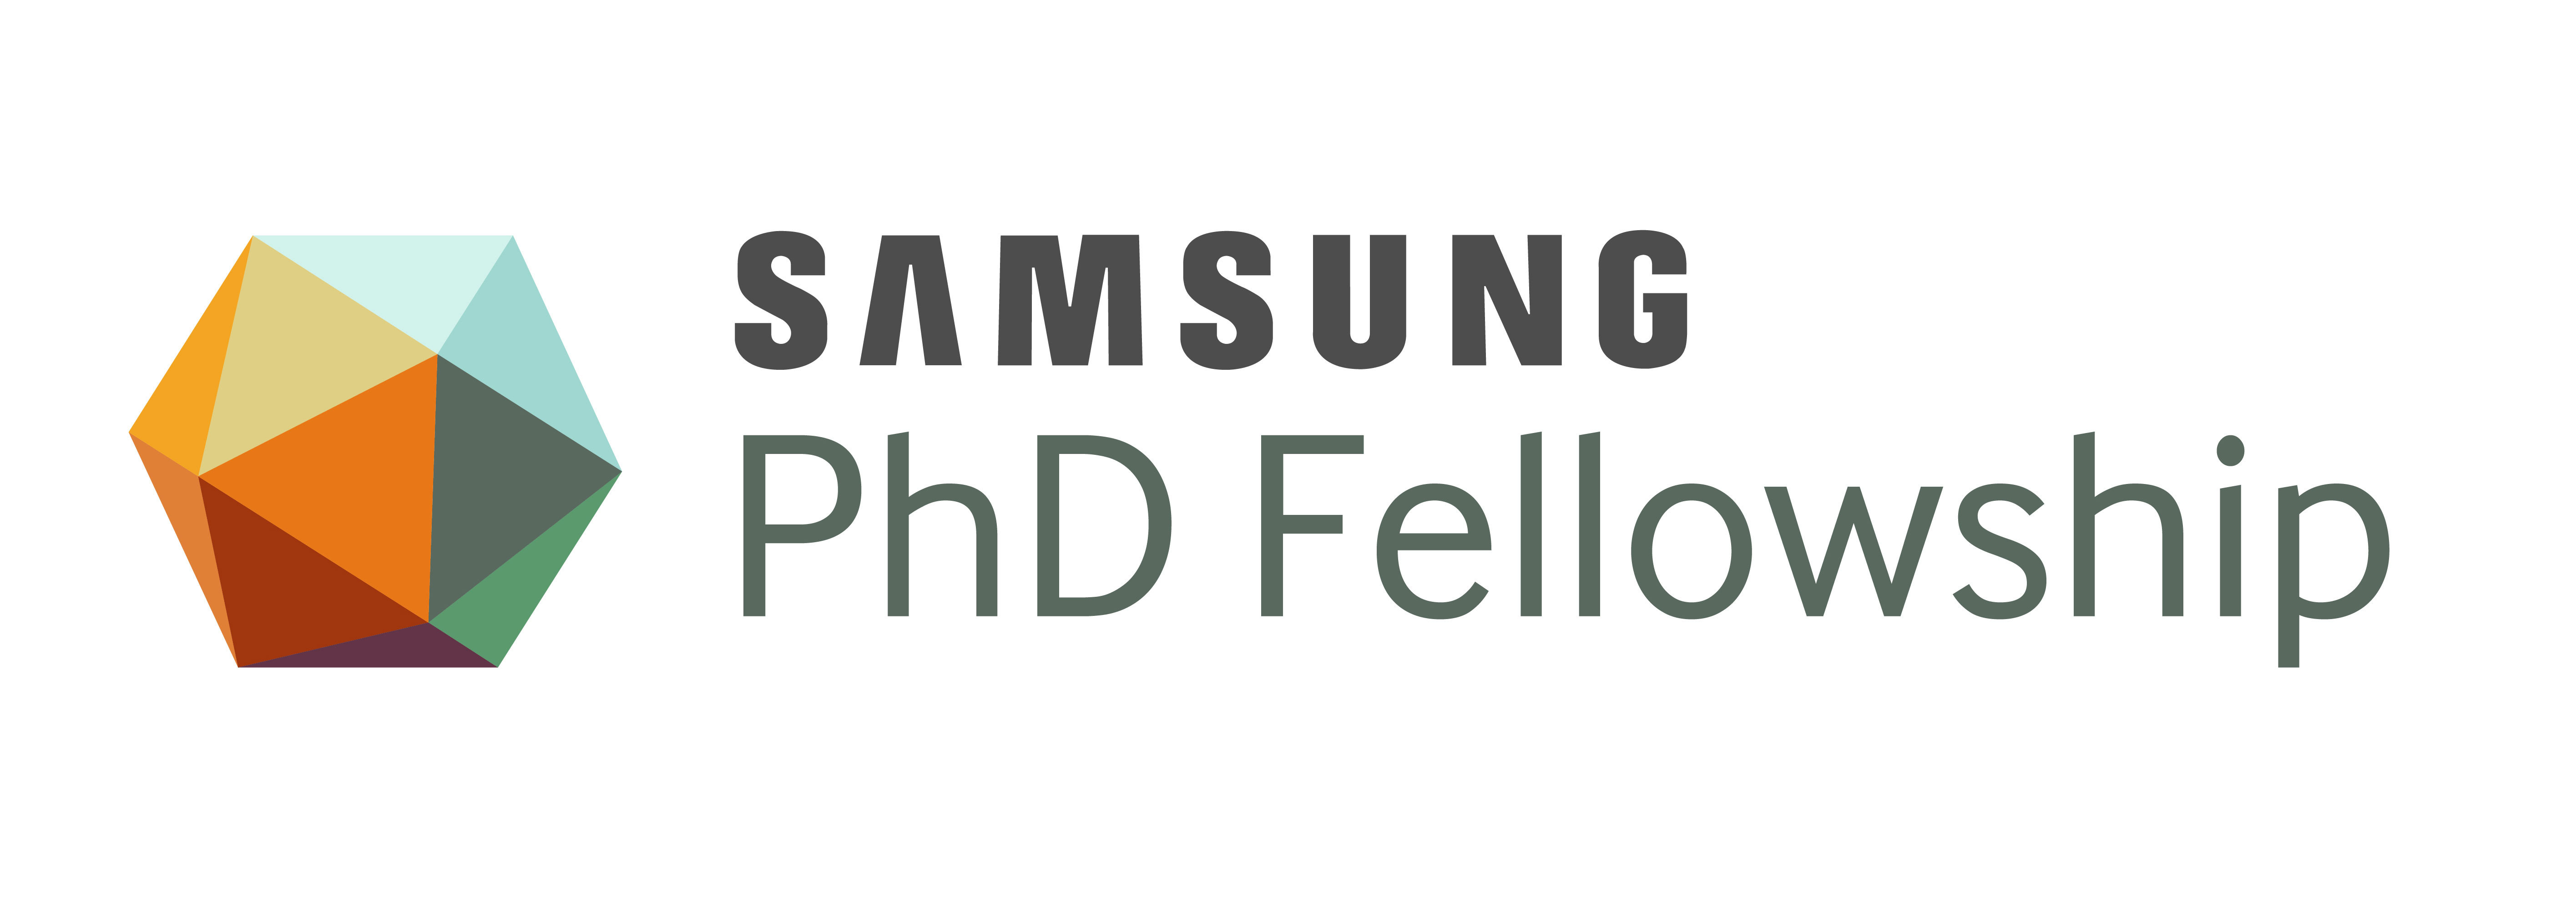 Samsung PhD Fellowship Program Recognizes Best and Brightest Student Innovators (Graphic: Business Wire)